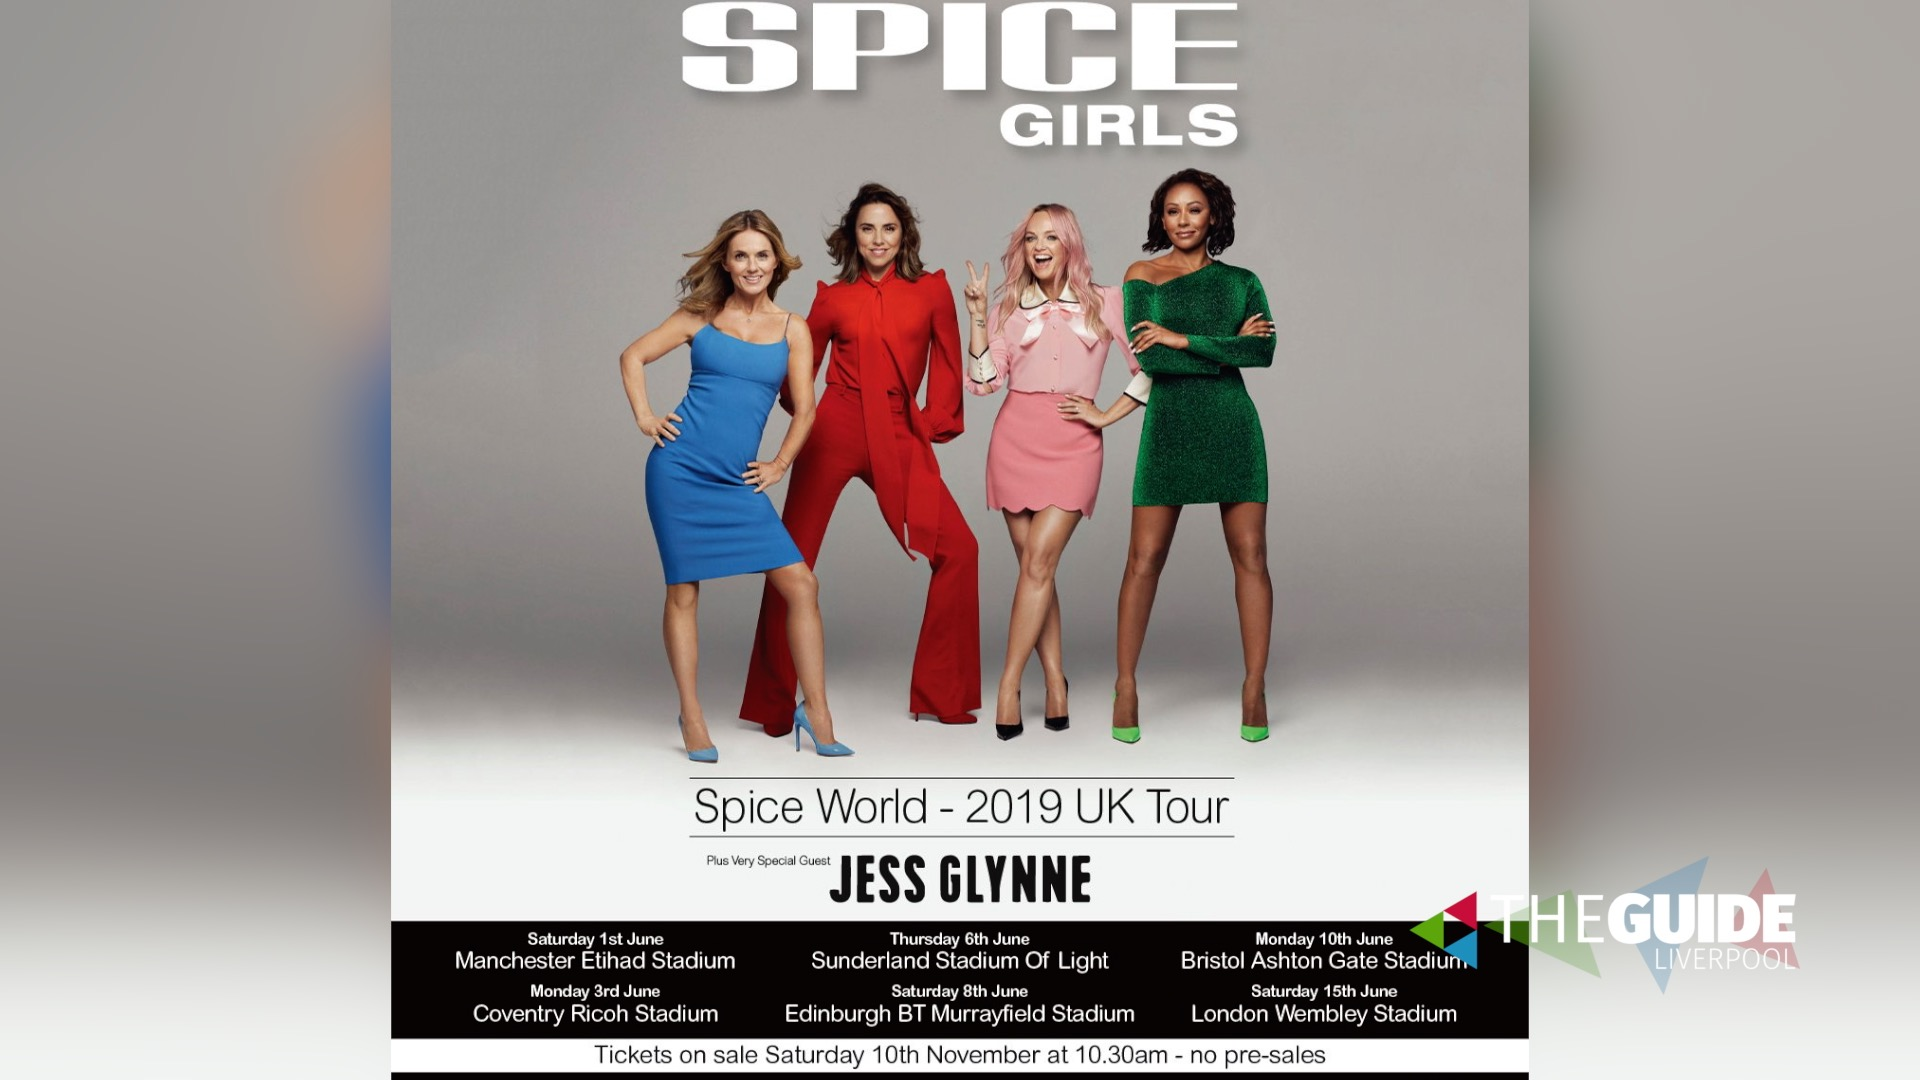 spice-girls-murrayfield-saturday-8th-june-2019-